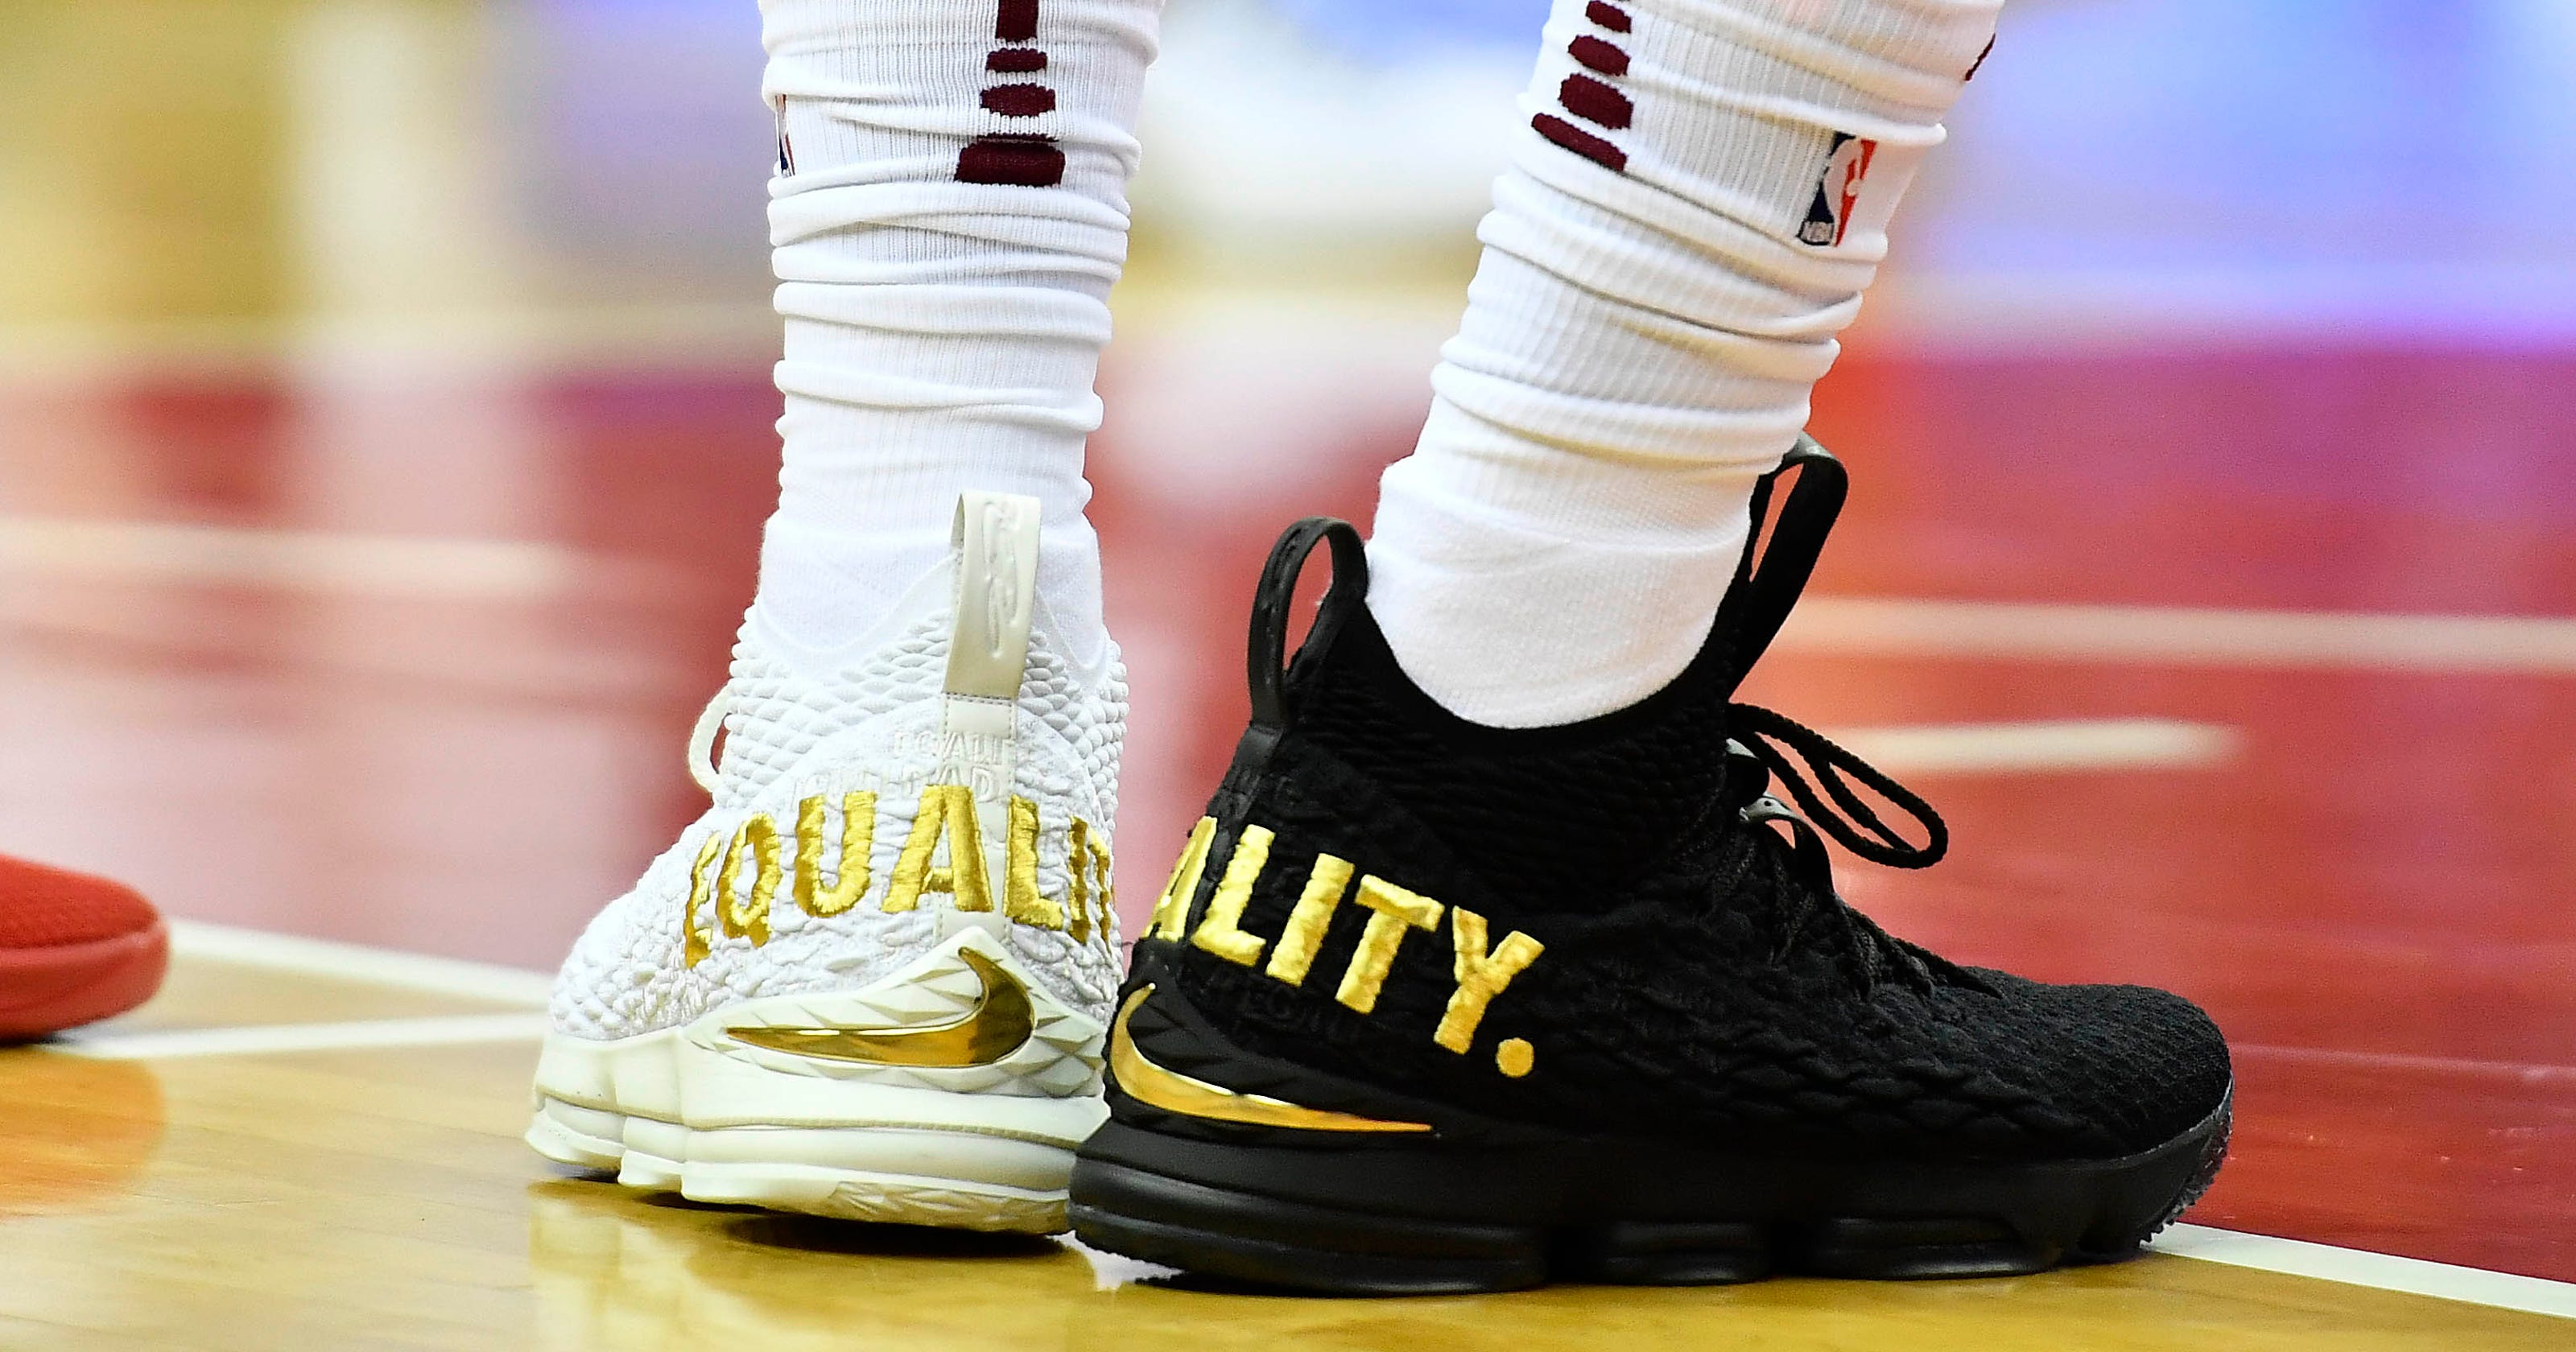 on sale 49570 fd7a9 LeBron James makes statement with  Equality  sneakers worn in D.C.